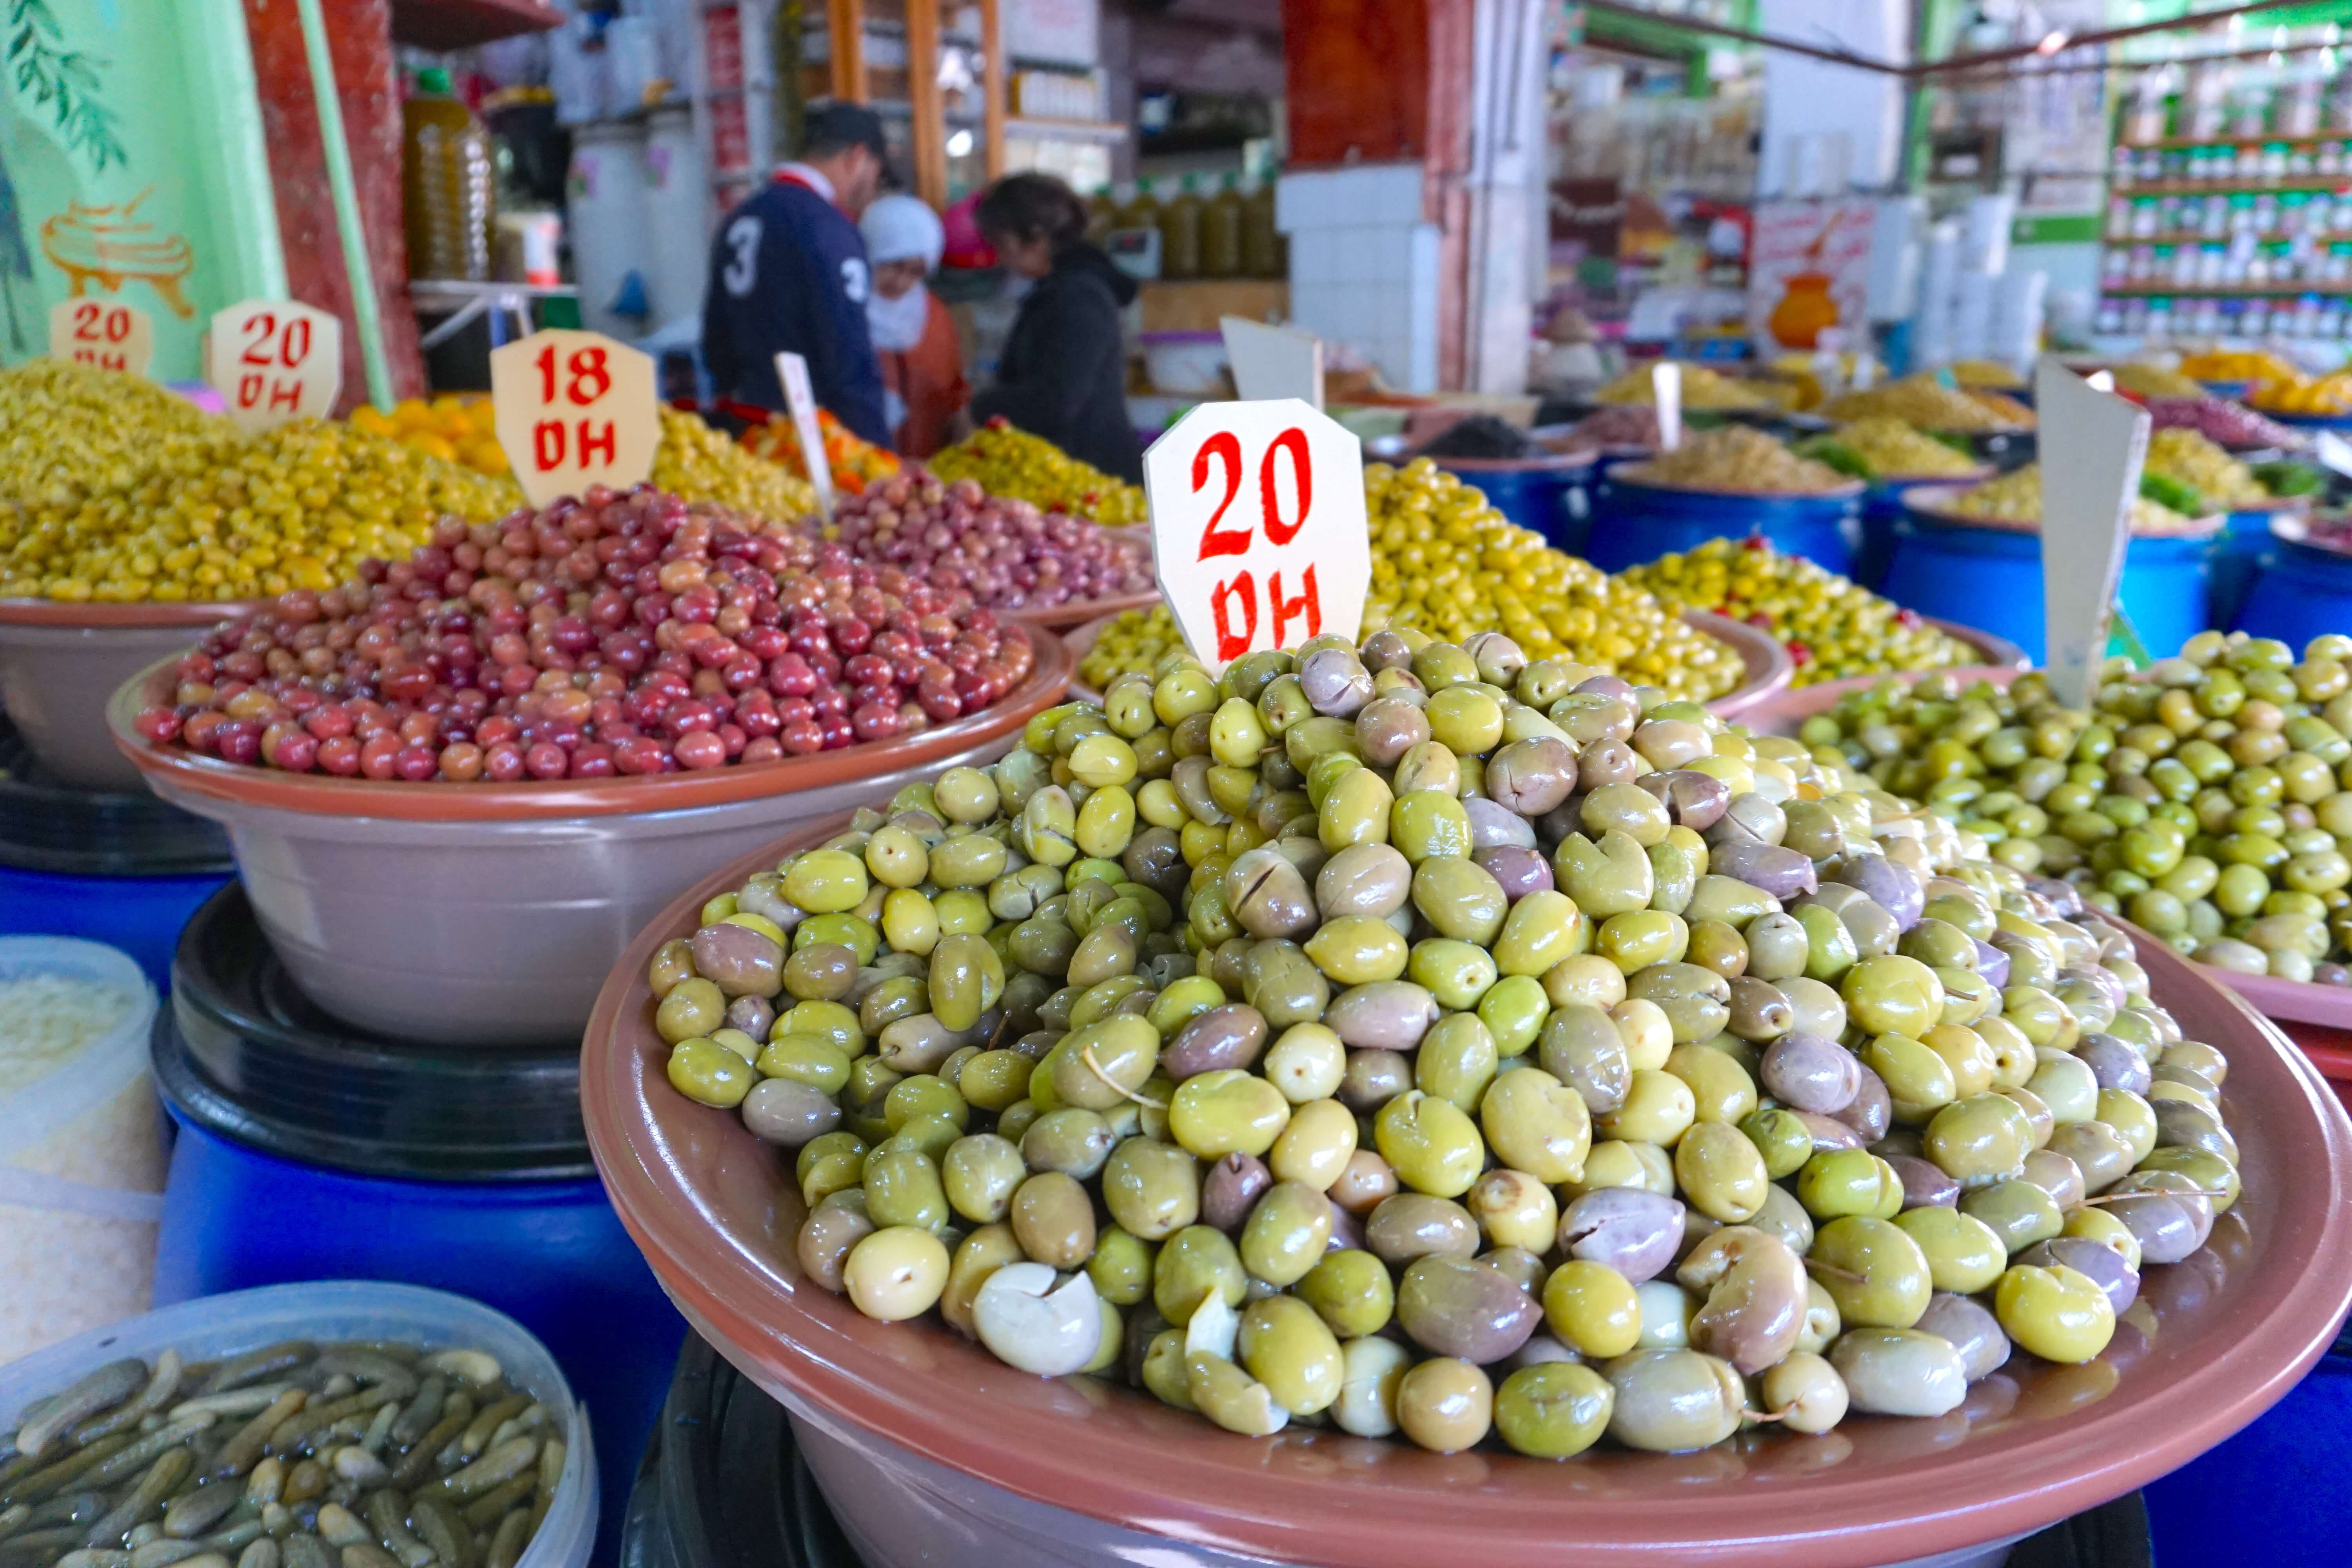 Olives - Morocco Food Guide: Delicious foods you need to try while visiting Morocco